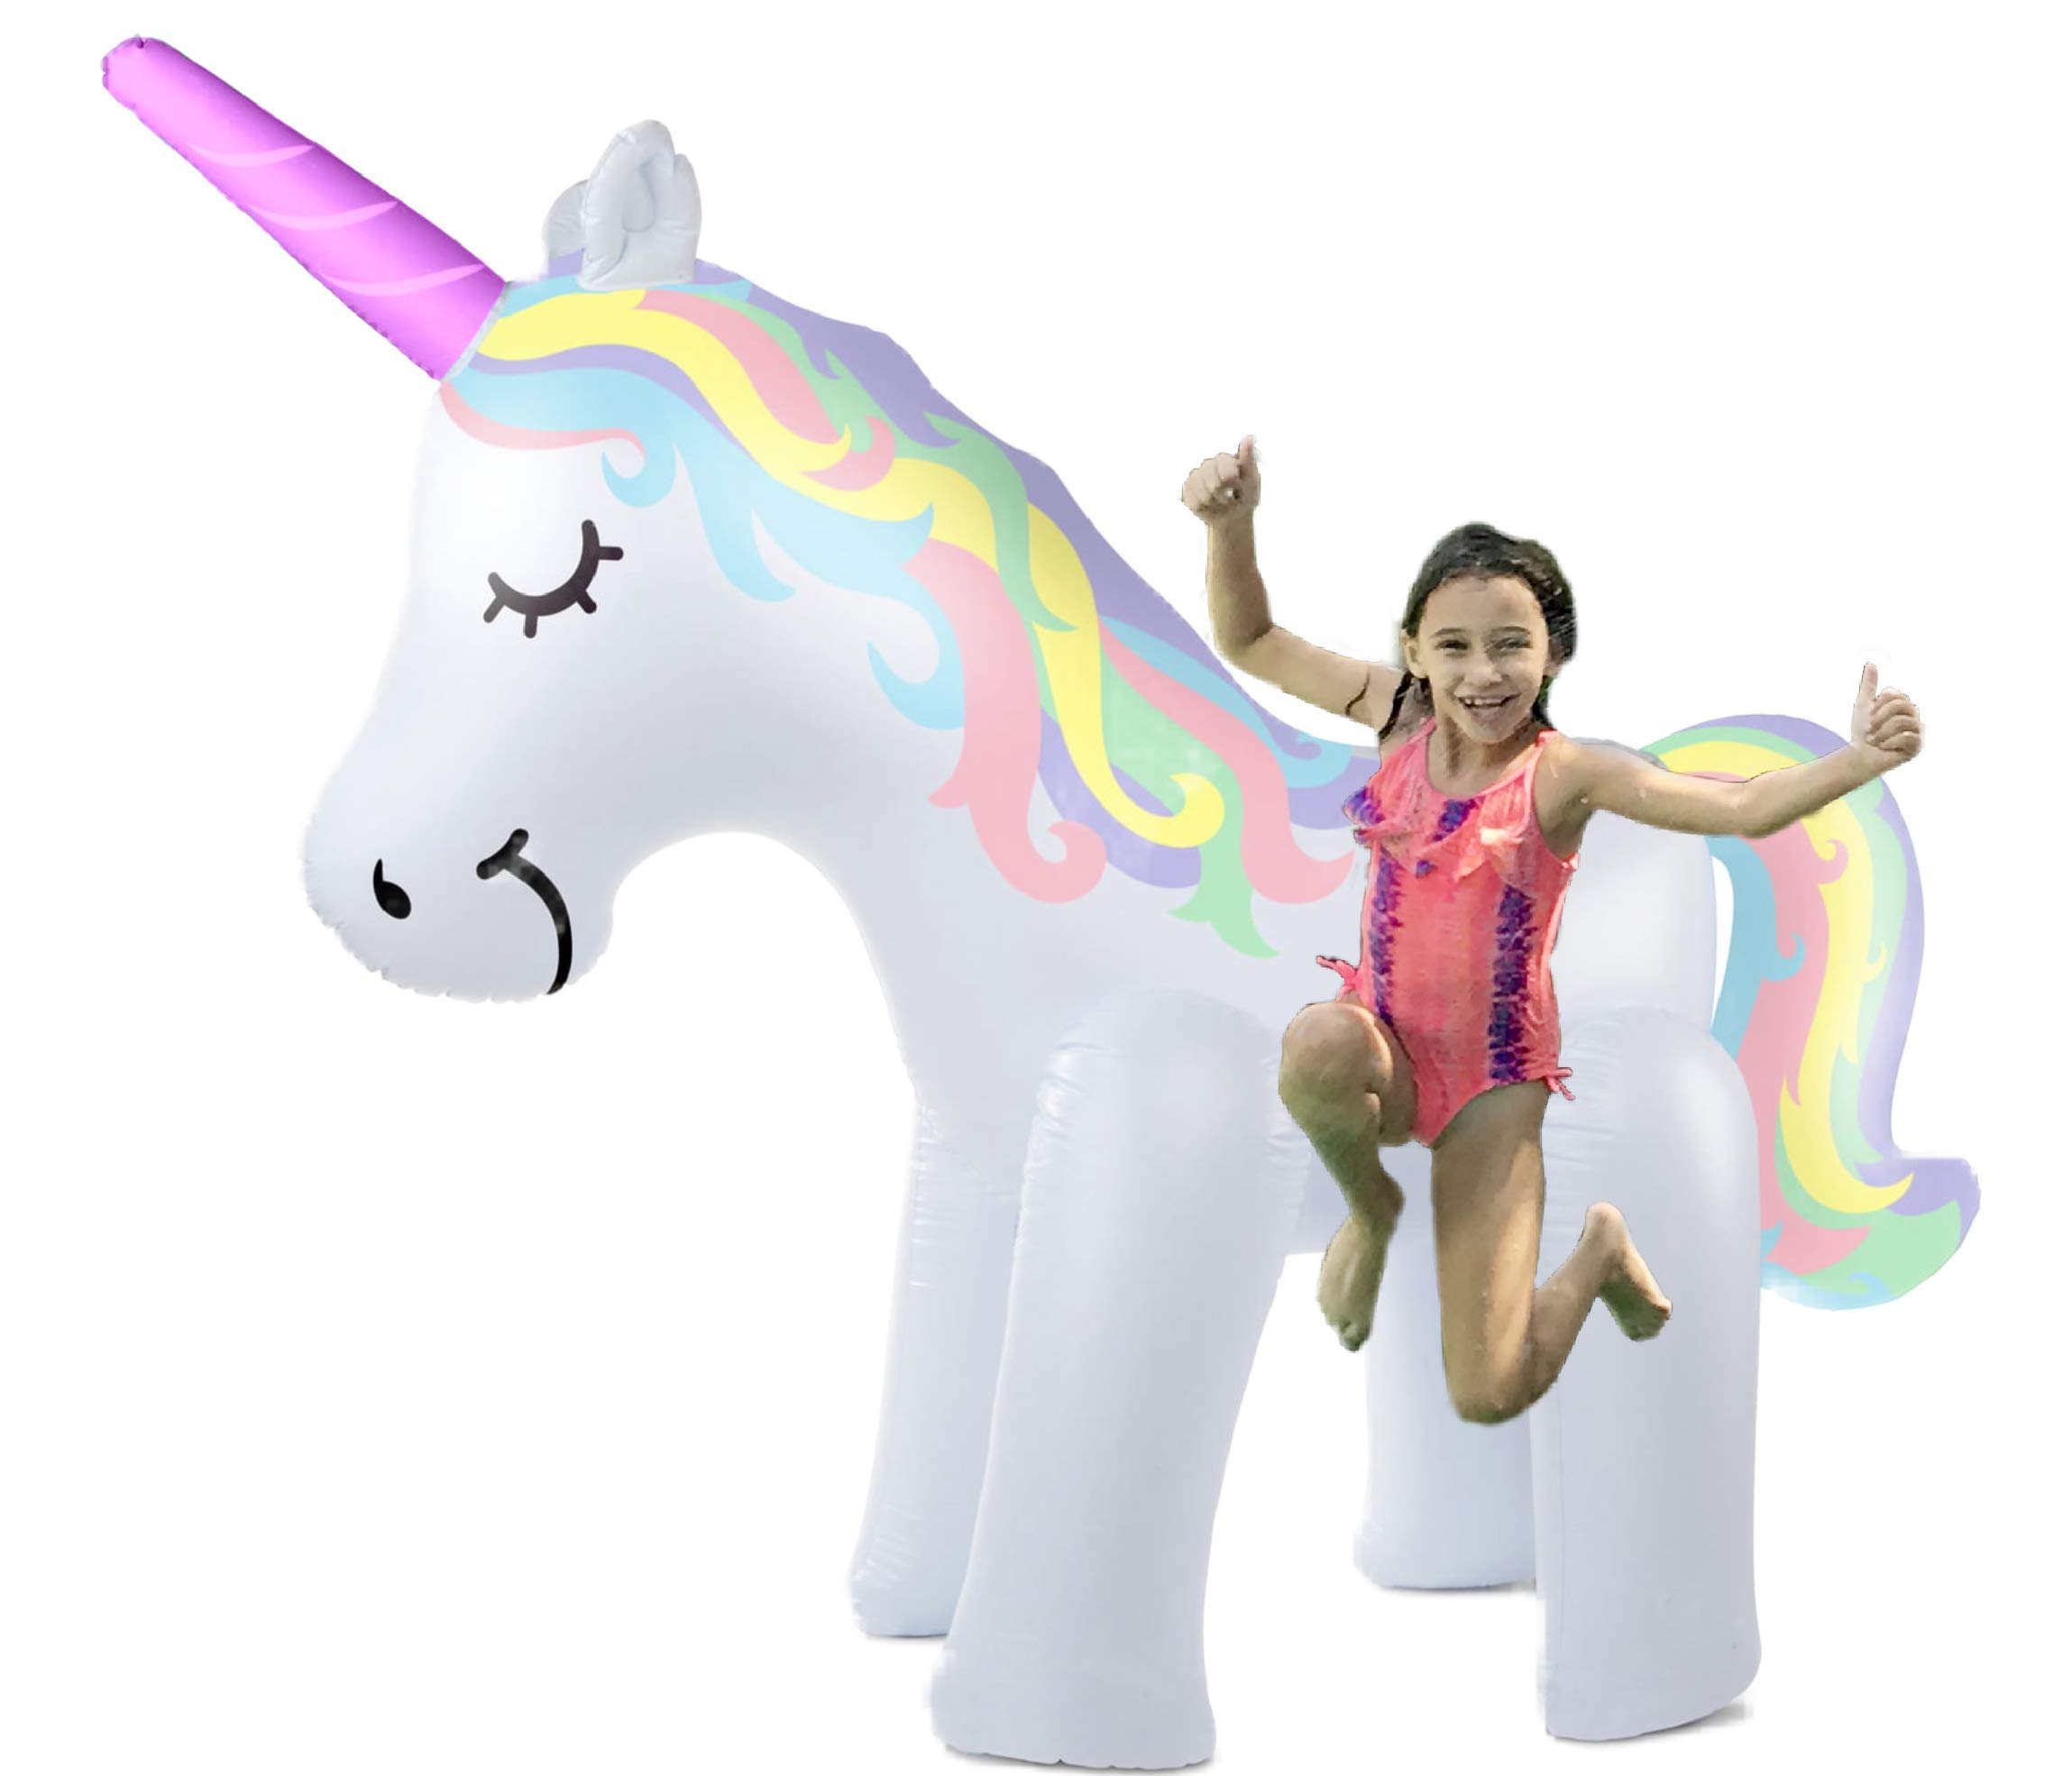 THE ORIGINAL UNICORN SPRINKLER Toy - Giant Inflatable Unicorn Sprinkler for Kids Adults - Great Outdoor Birthday Party… 2